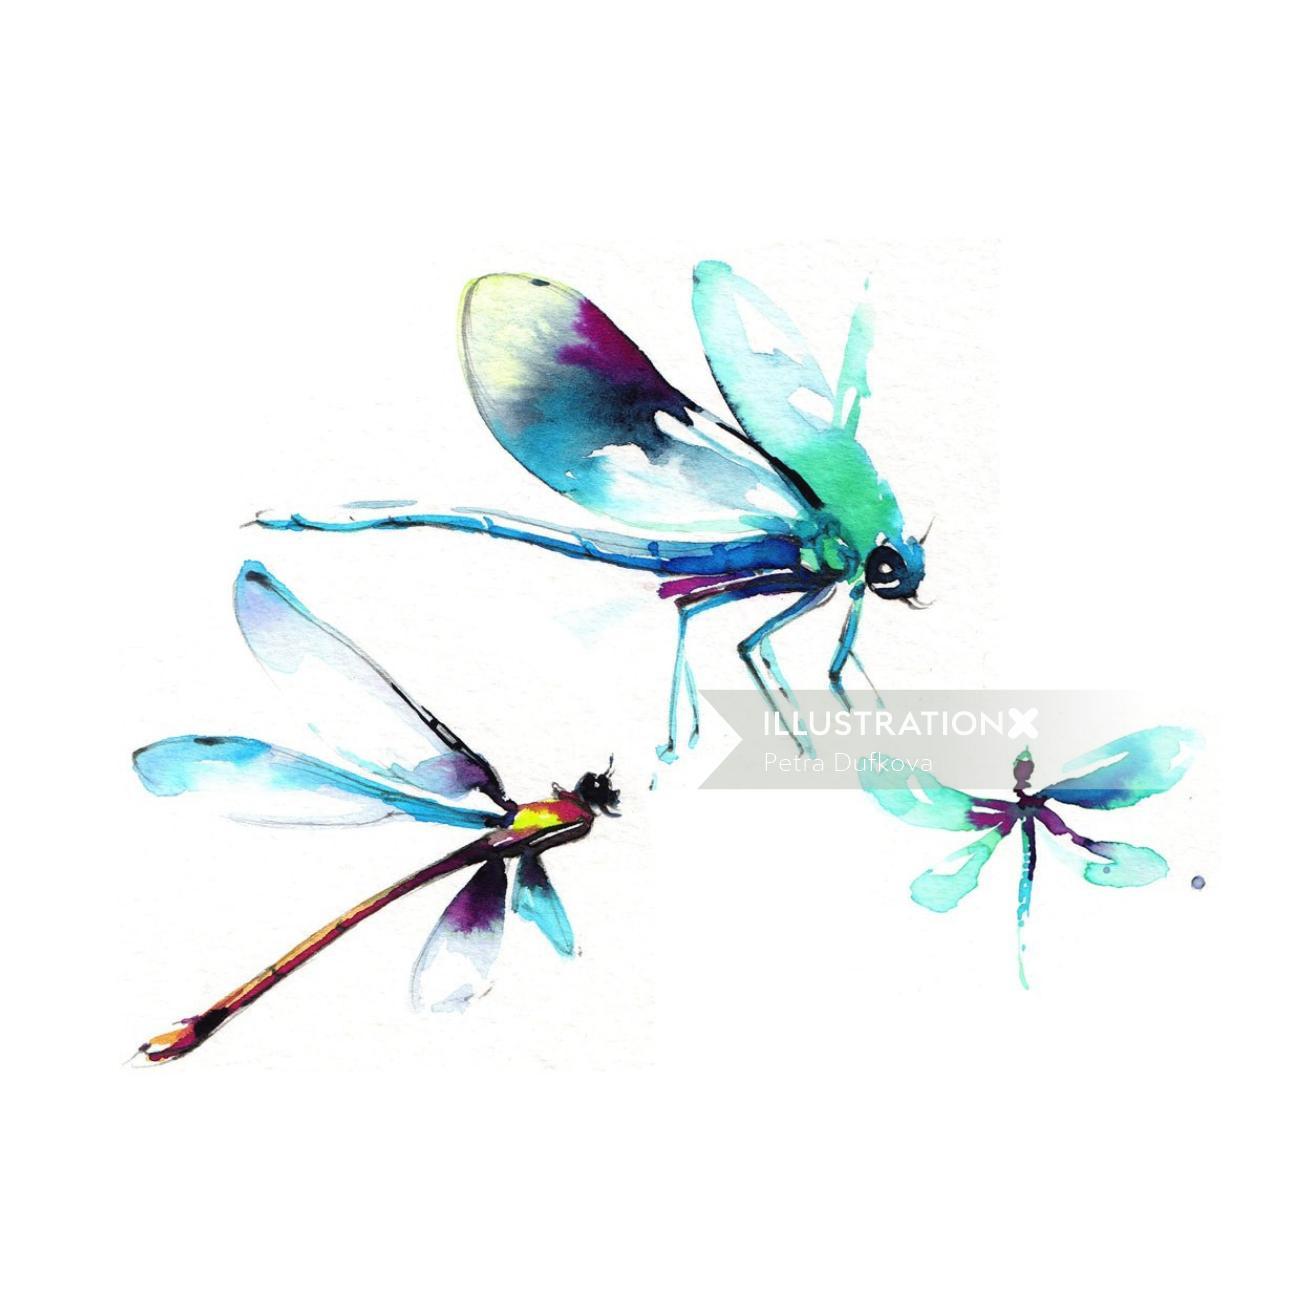 Watercolor illustration of Net-winged insects